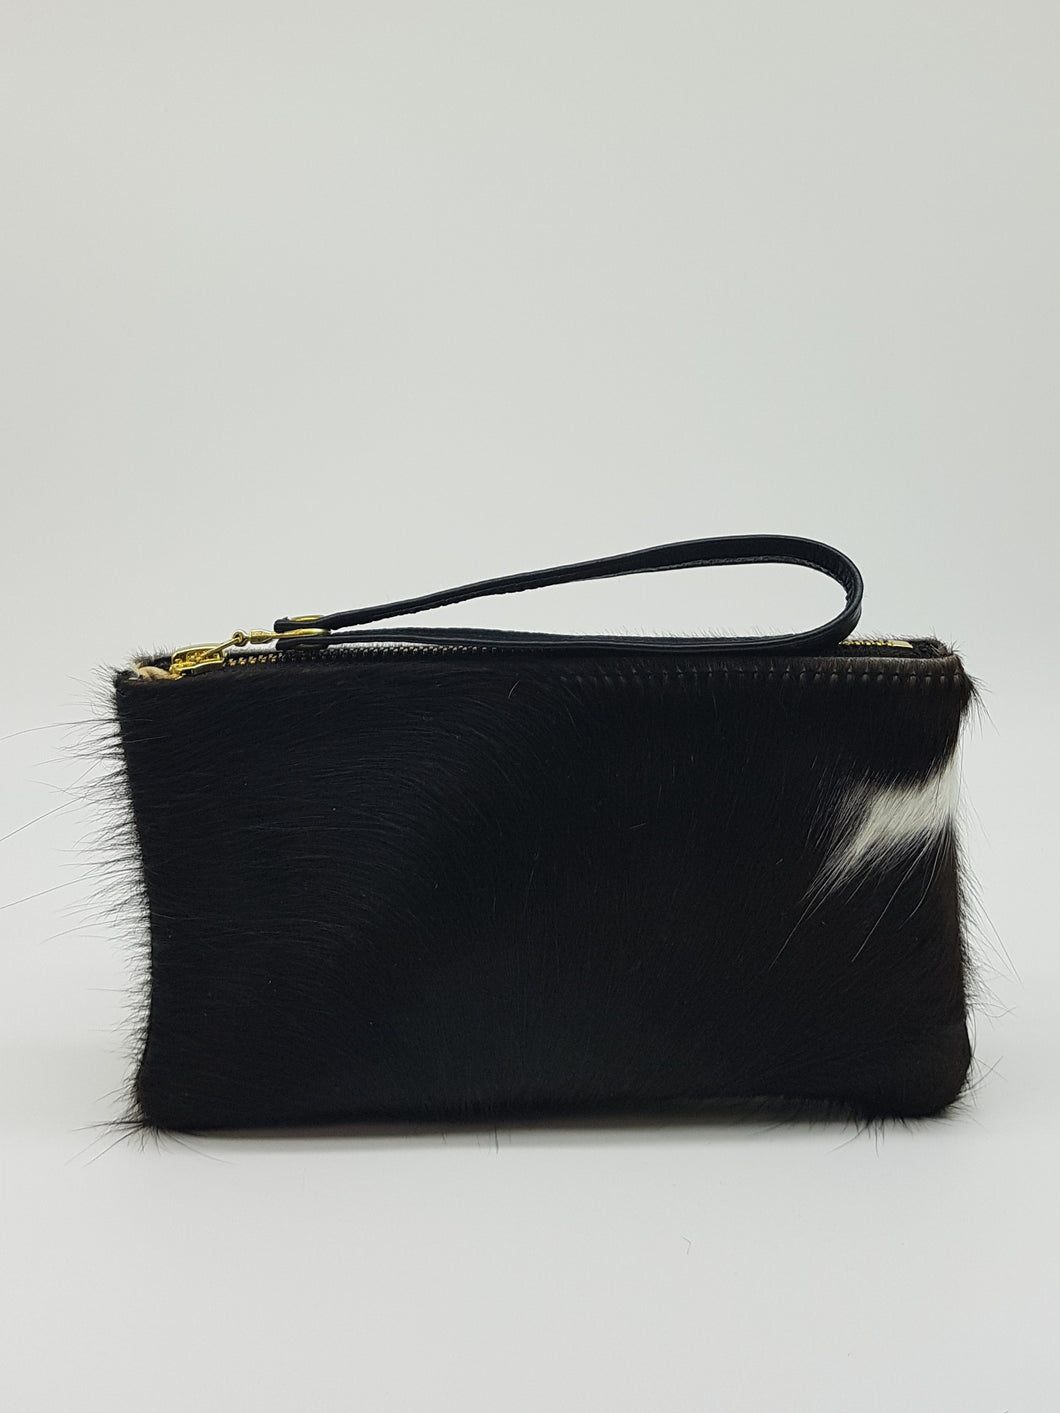 Handmade leather handbags, clutch leather handbags